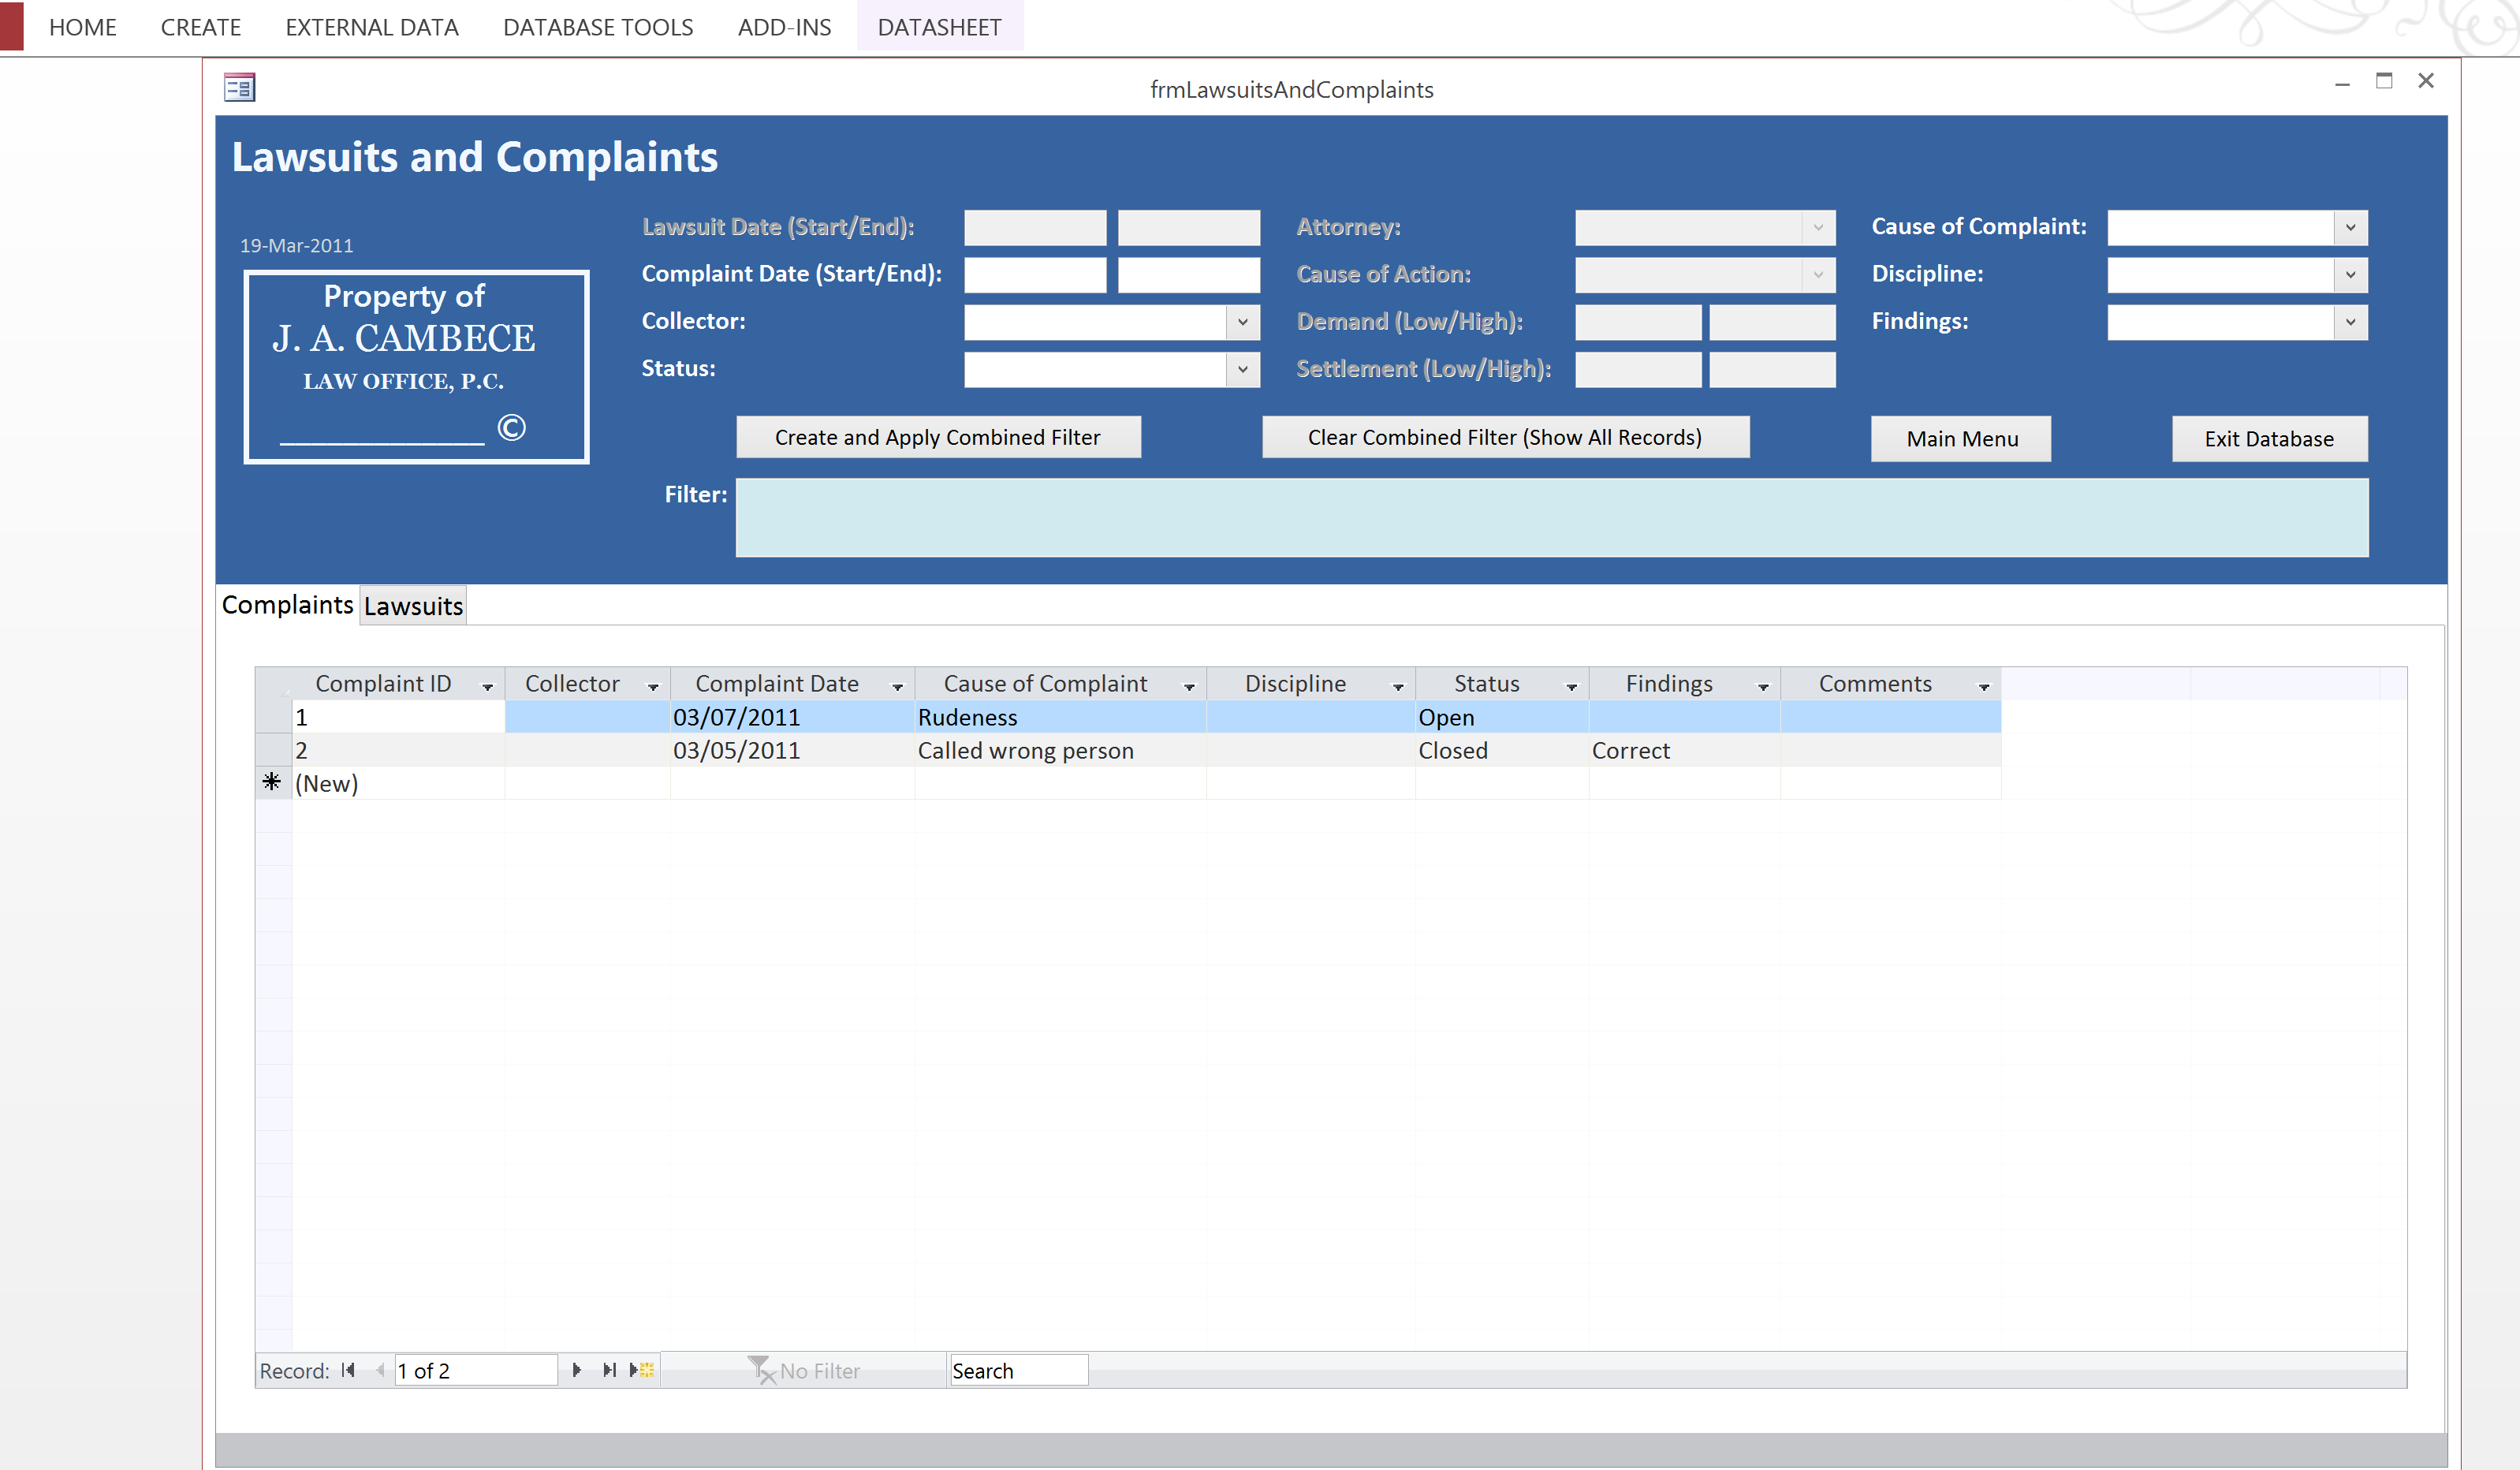 Microsoft Access Forms Graphical User Interface